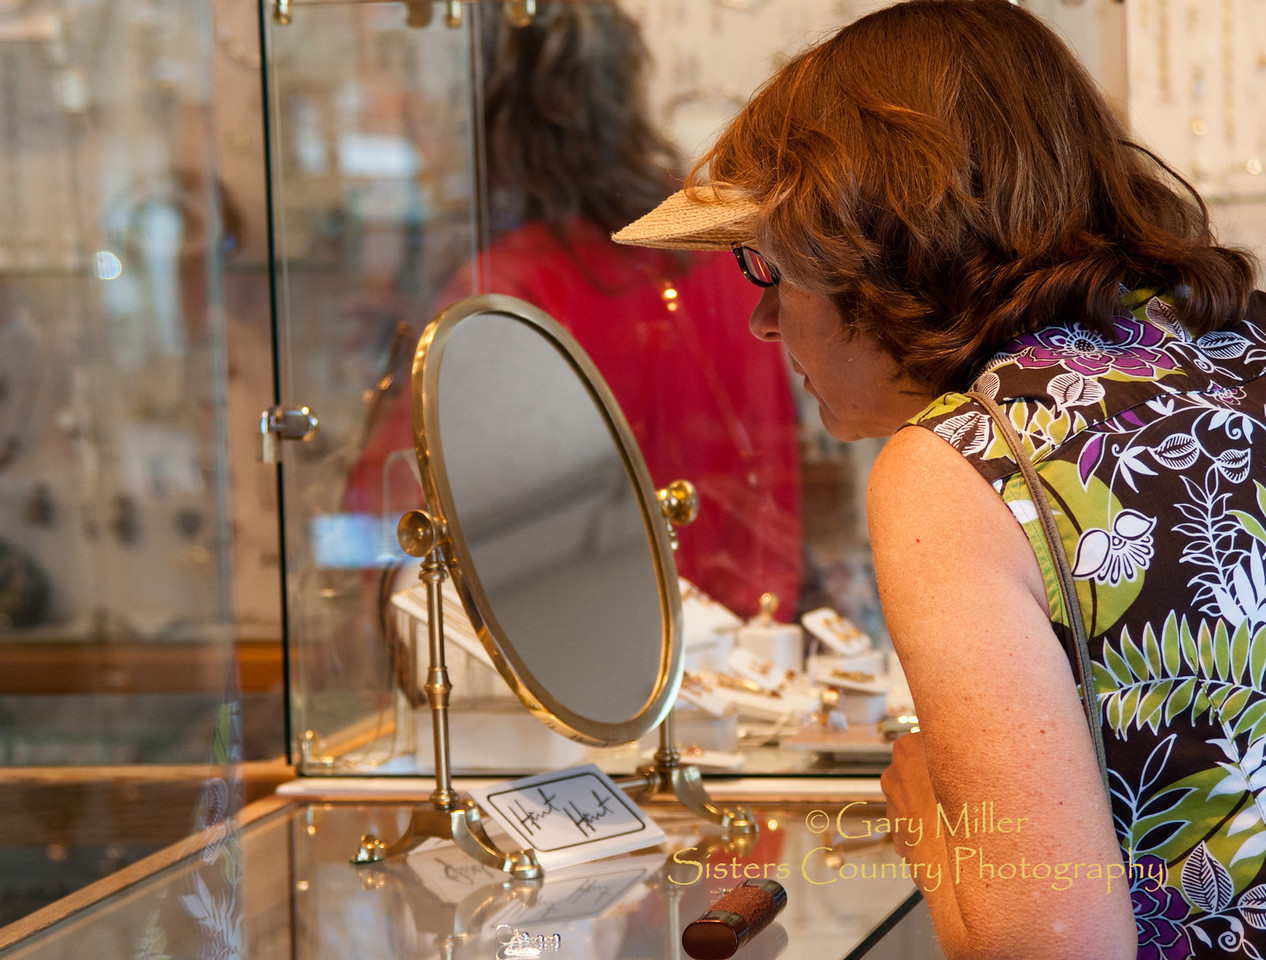 Shopping at the JewelPhoto by Gary N. Miller - Sisters Country Photography